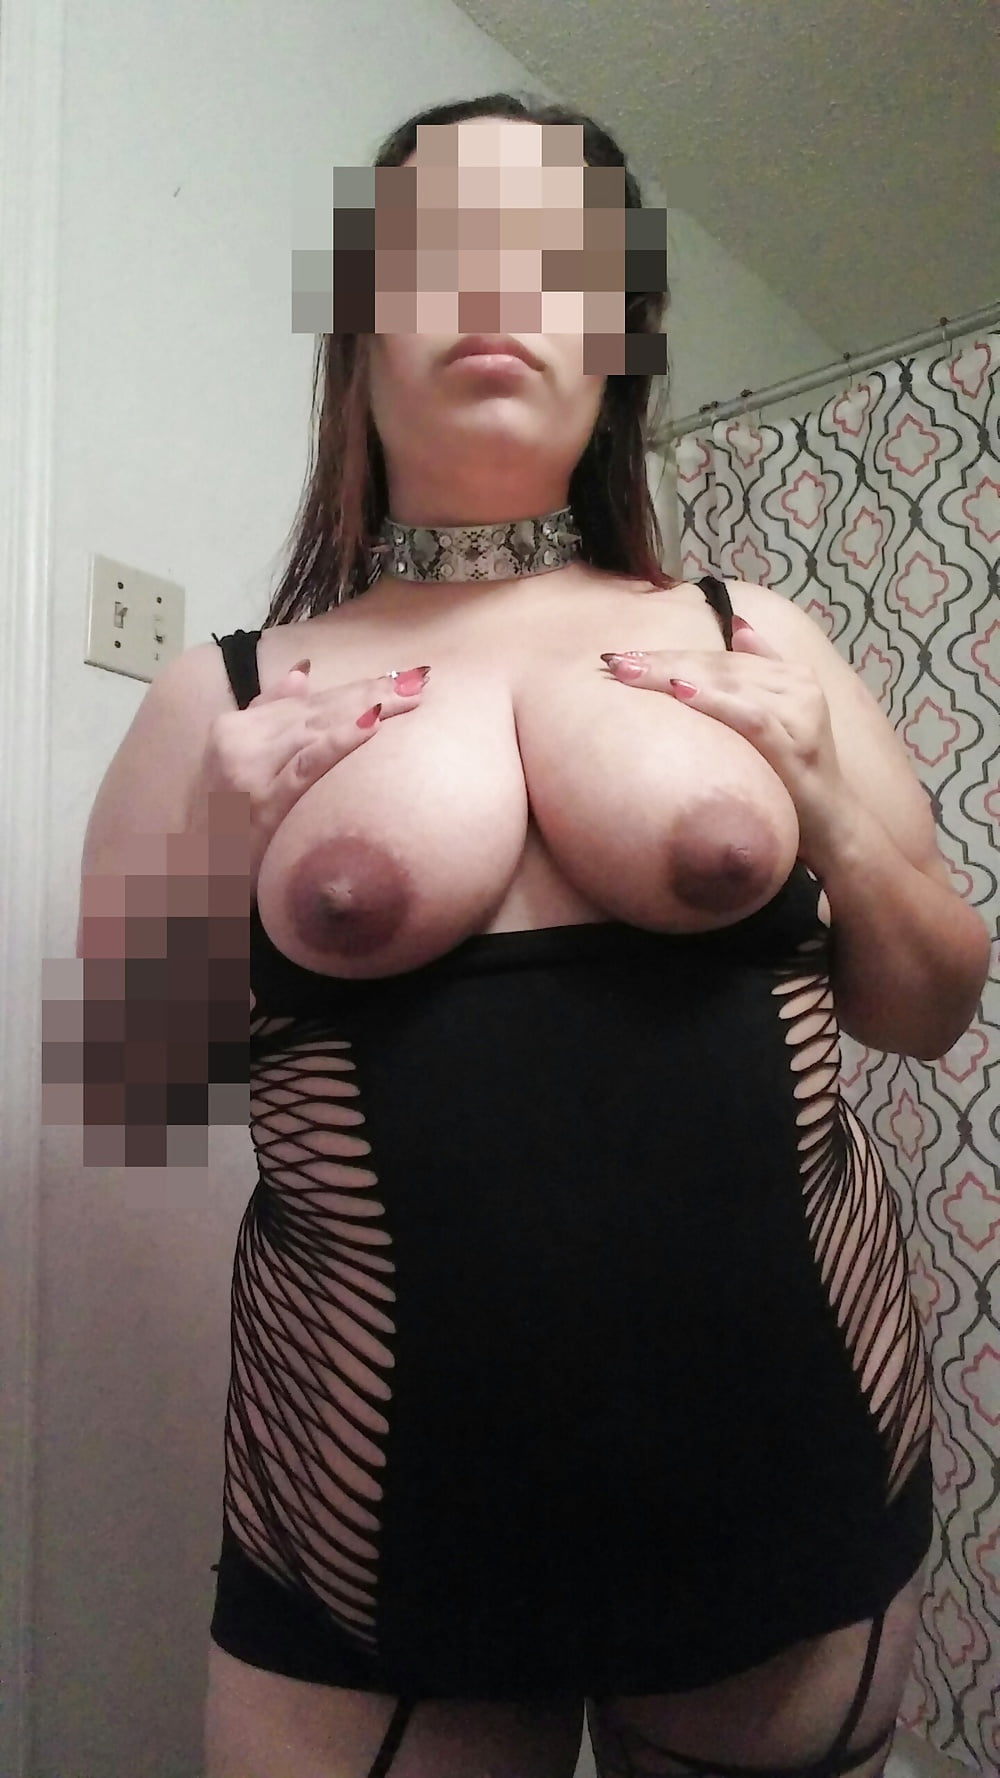 Nude pics sluts dressing up for daddy